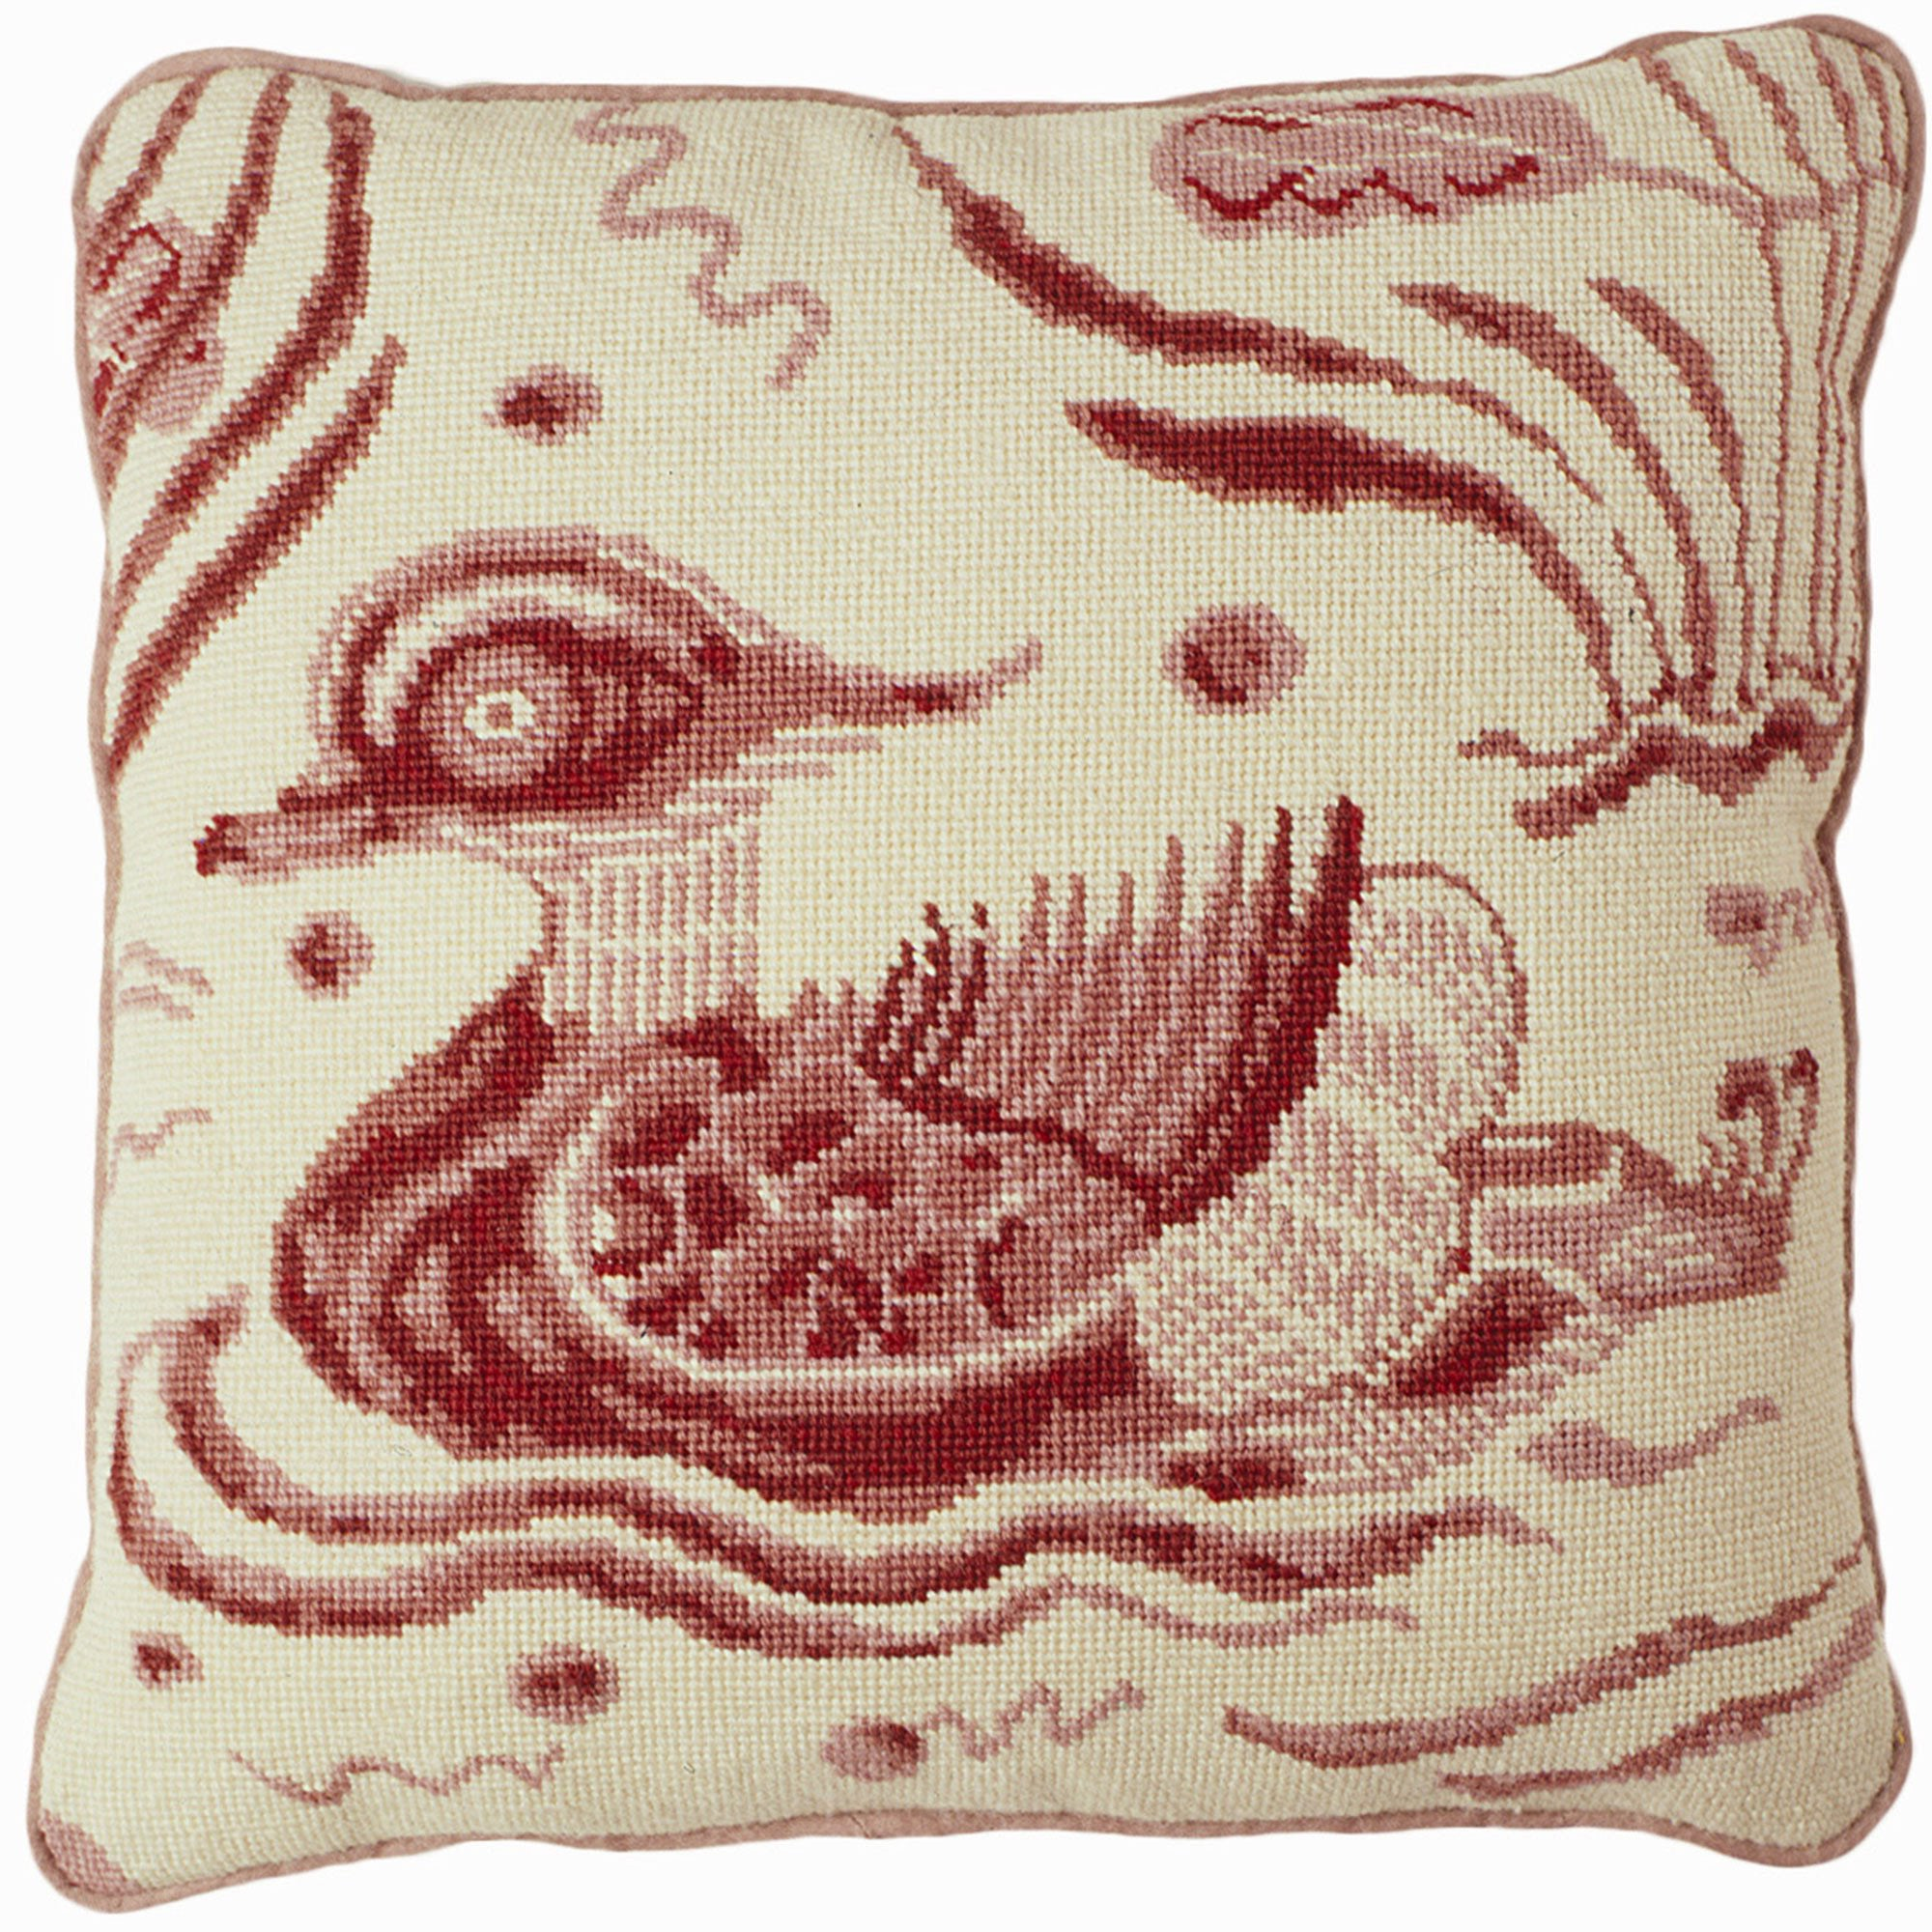 Fine Cell Work William De Morgan Pink Duck Needlepoint Cushion Kit